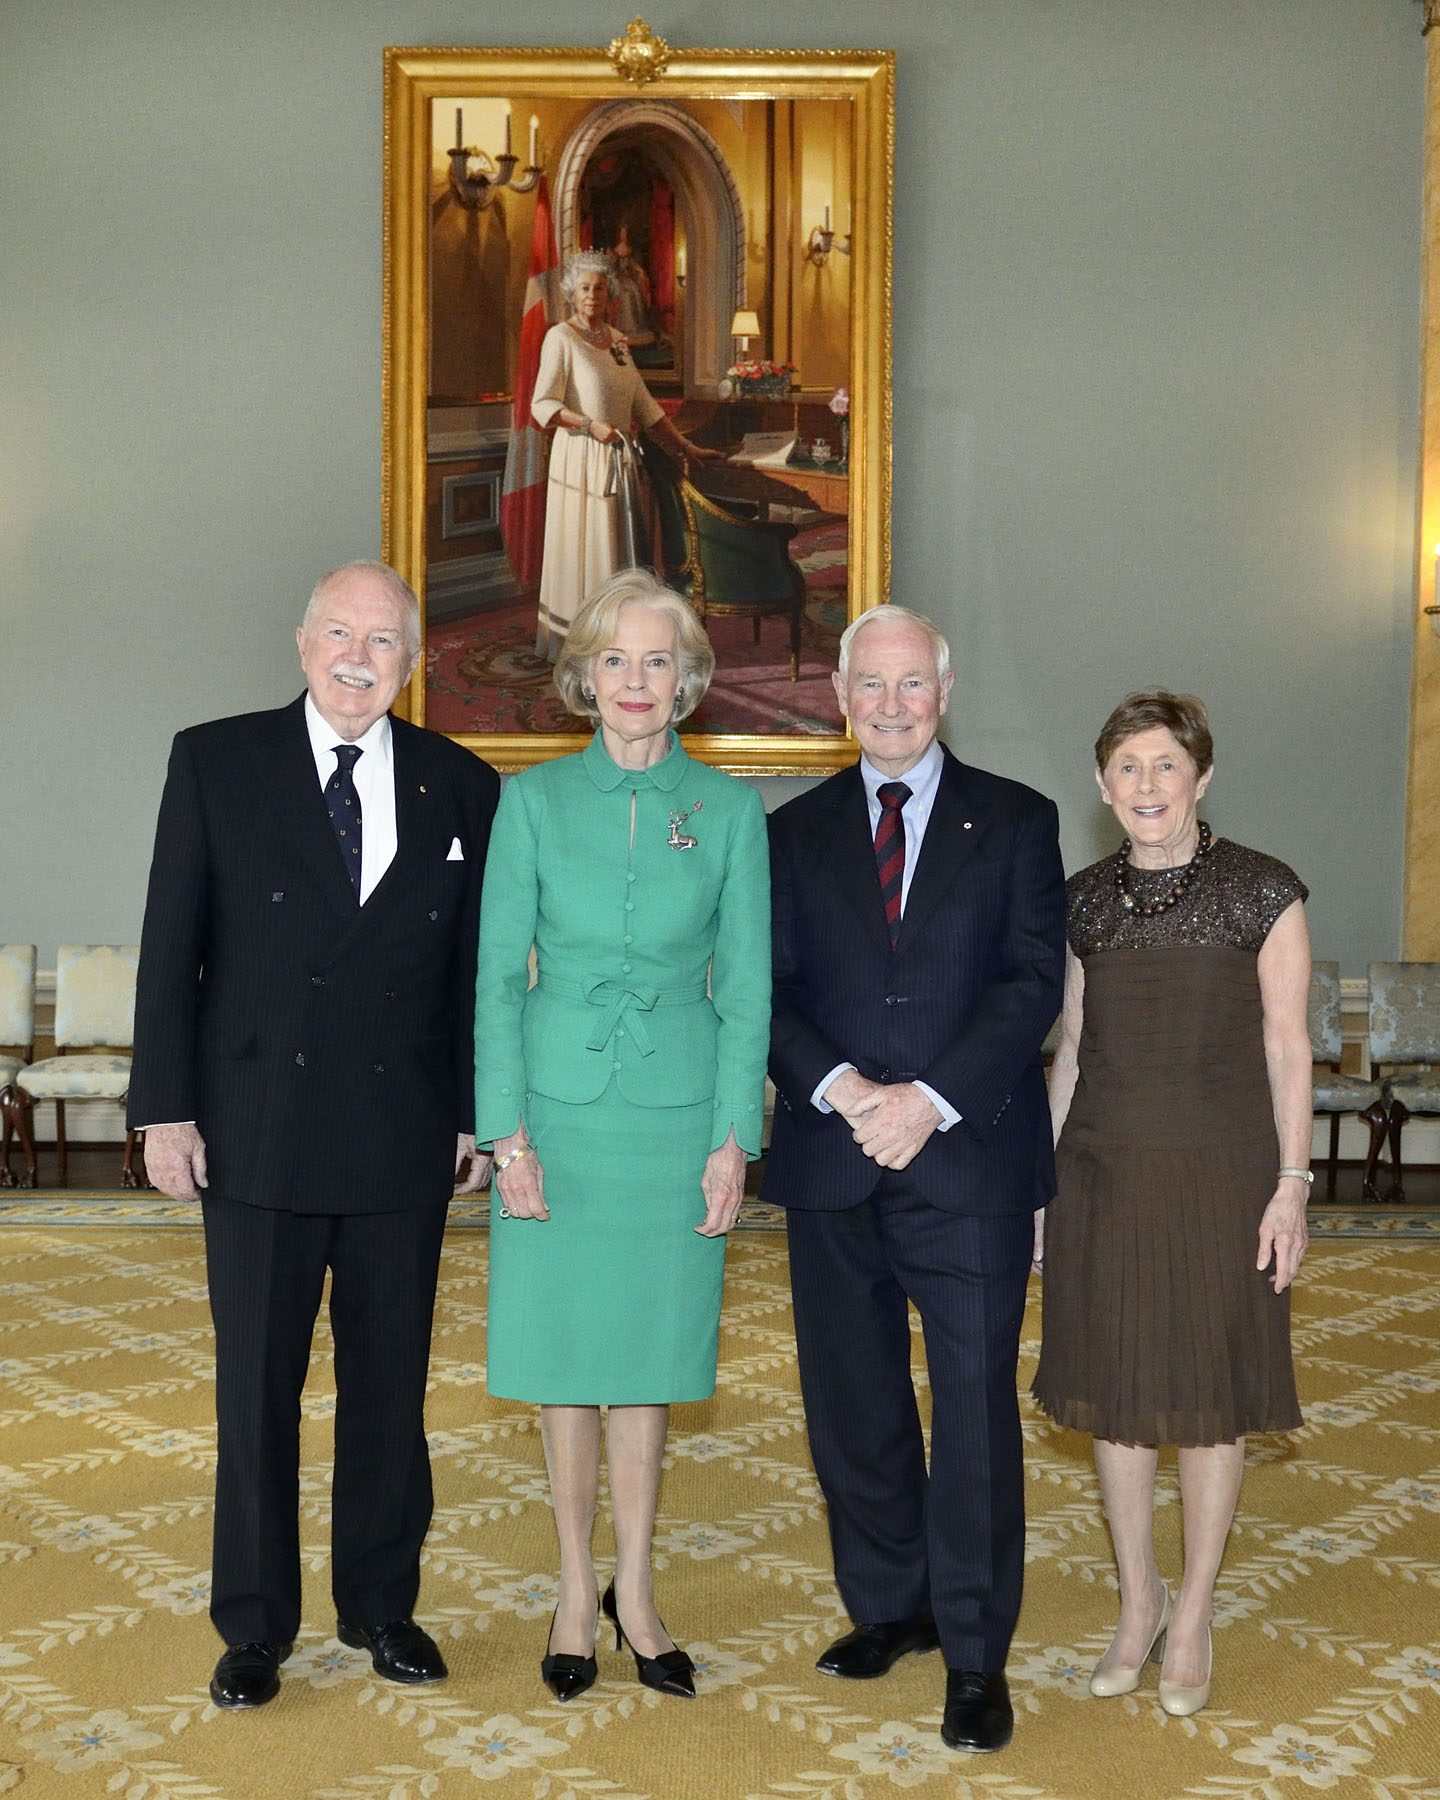 Besides coming to Ottawa, the Governor-General of Australia and Mr. Bryce are visiting Vancouver and Iqaluit during their stay in Canada.